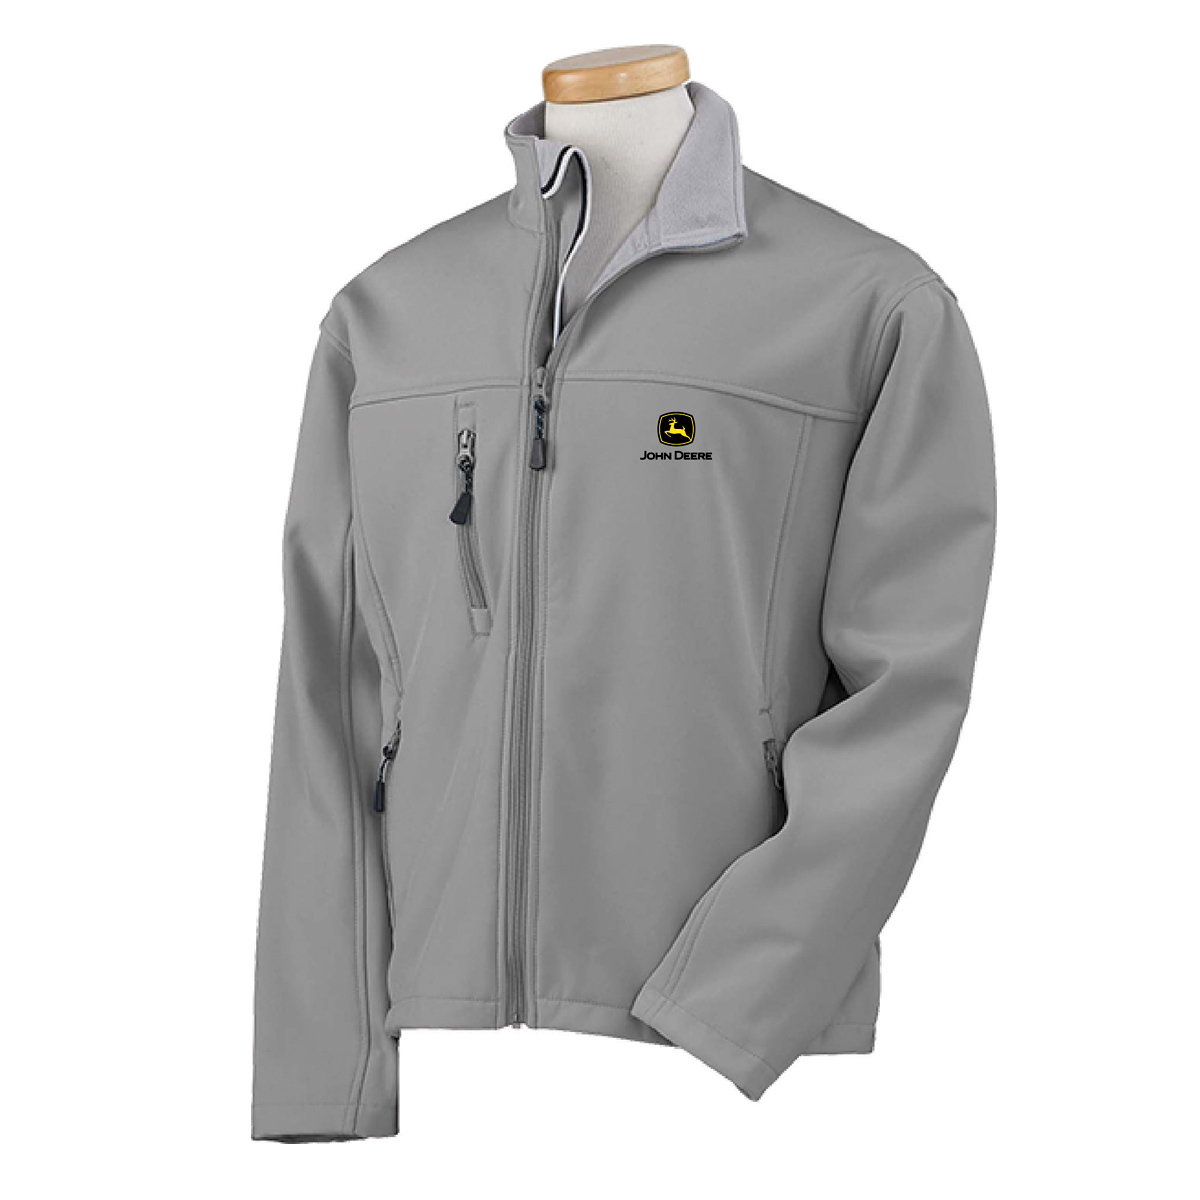 Men's Breathable Softshell Jacket